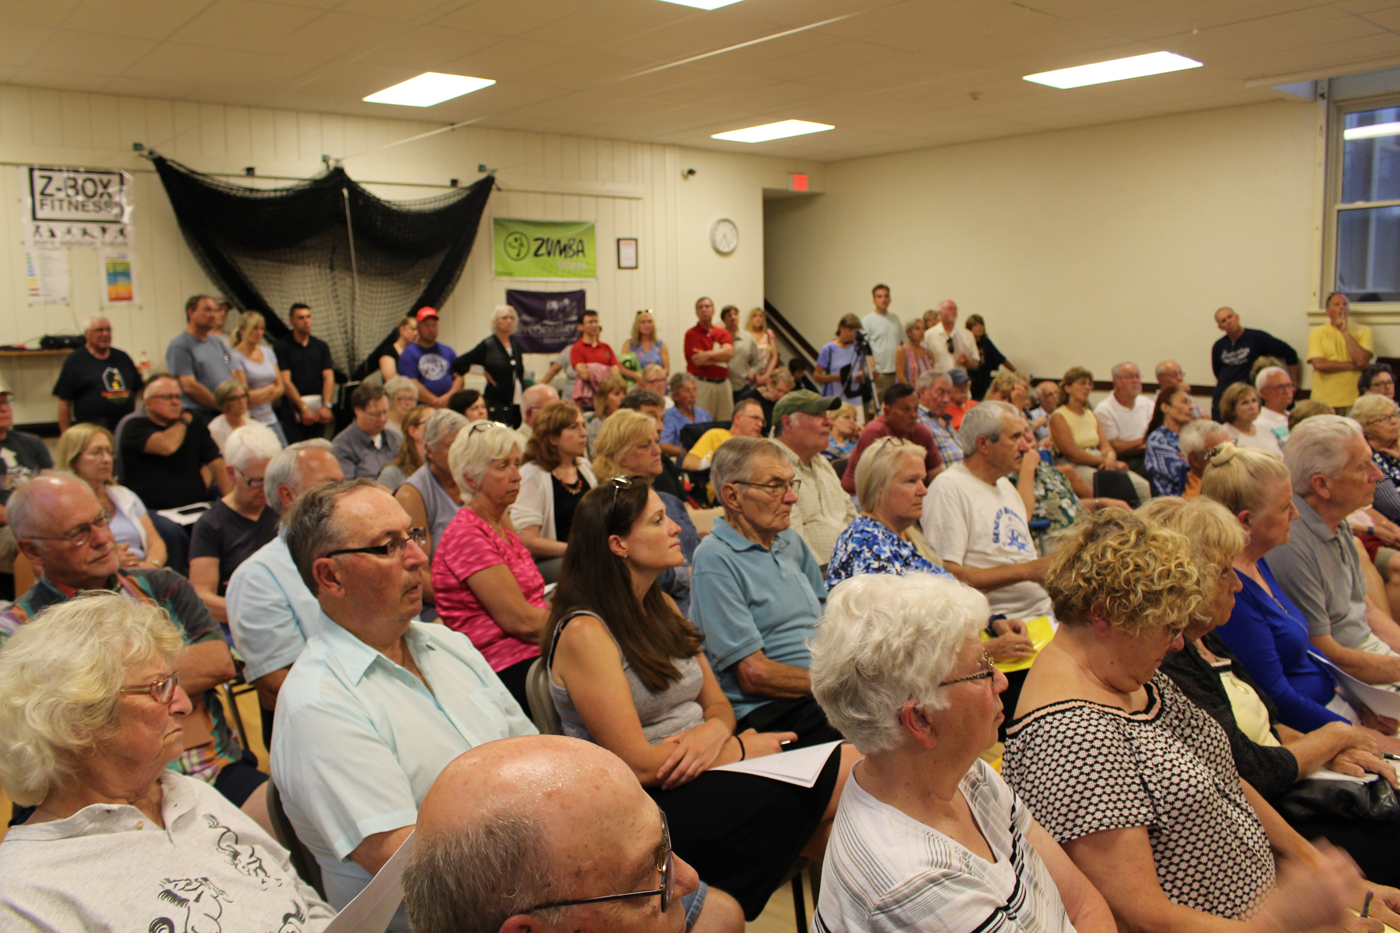 Residents and business owners along Lake Ontario crowd into the Hamlin Town Hall Friday, June 23, for a meeting/rally of United Shoreline. Photo by Stephen Herbeck